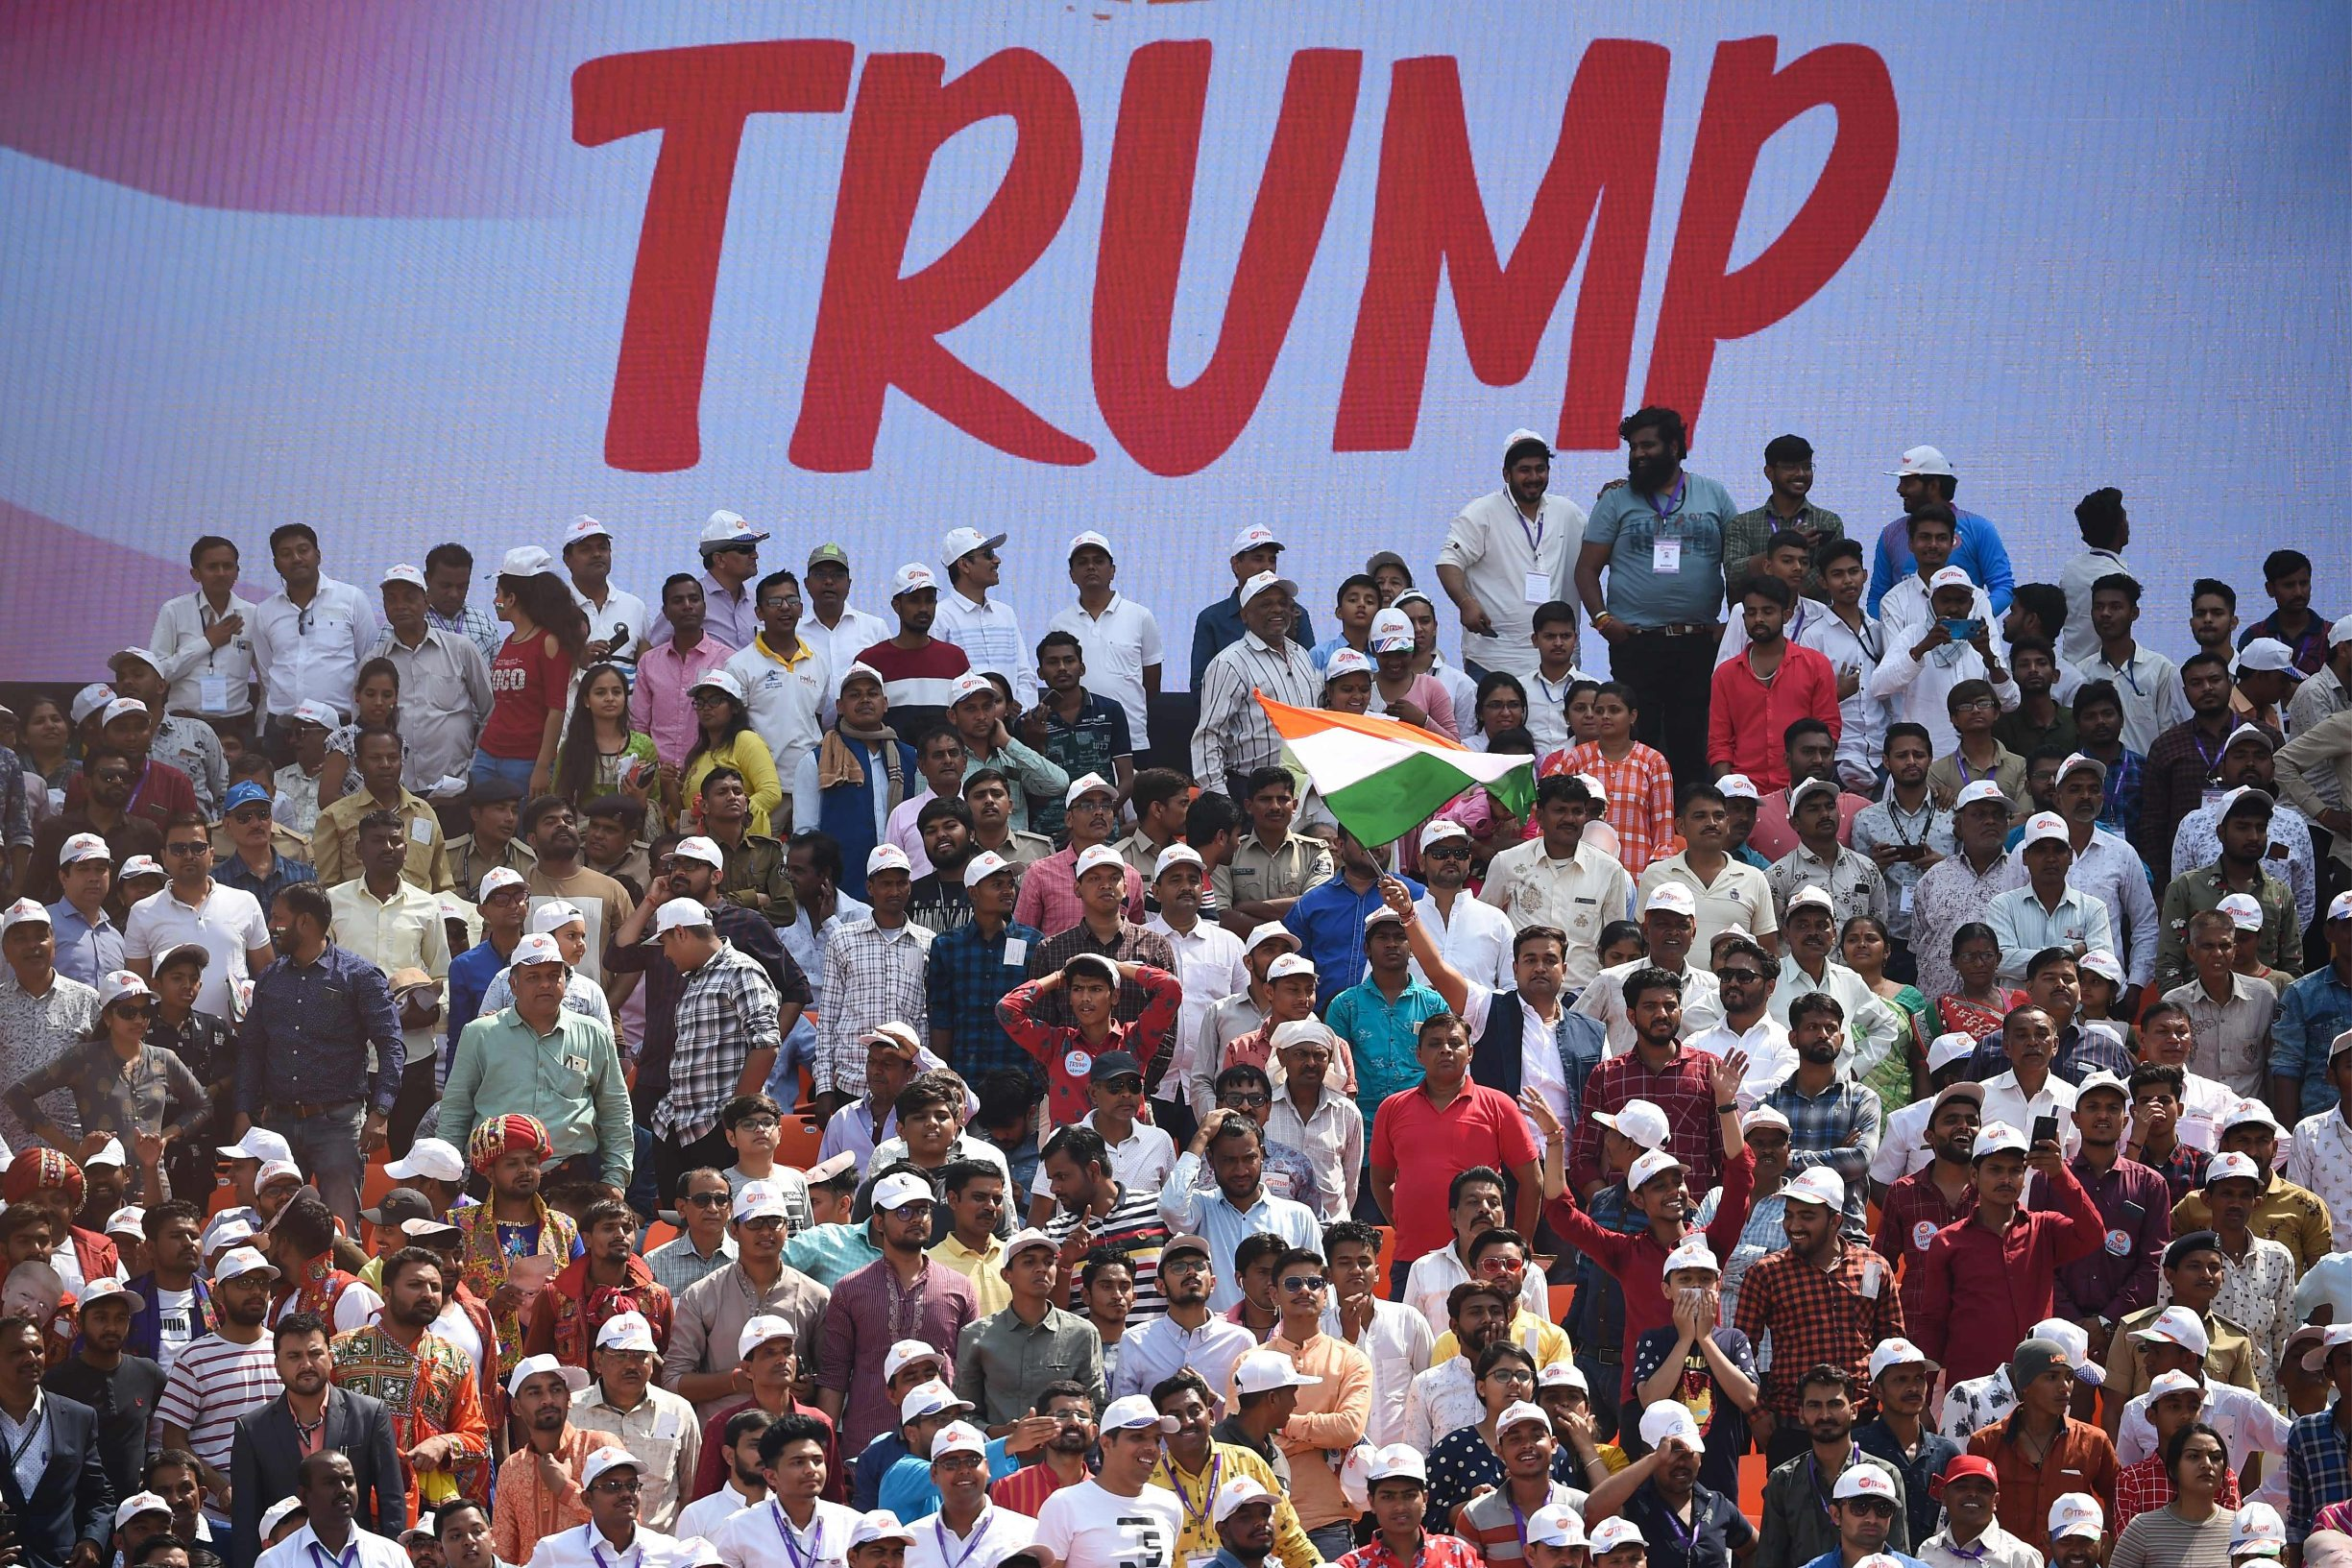 People attend 'Namaste Trump' rally at Sardar Patel Stadium in Motera, on the outskirts of Ahmedabad, on February 24, 2020. (Photo by Money SHARMA / AFP)